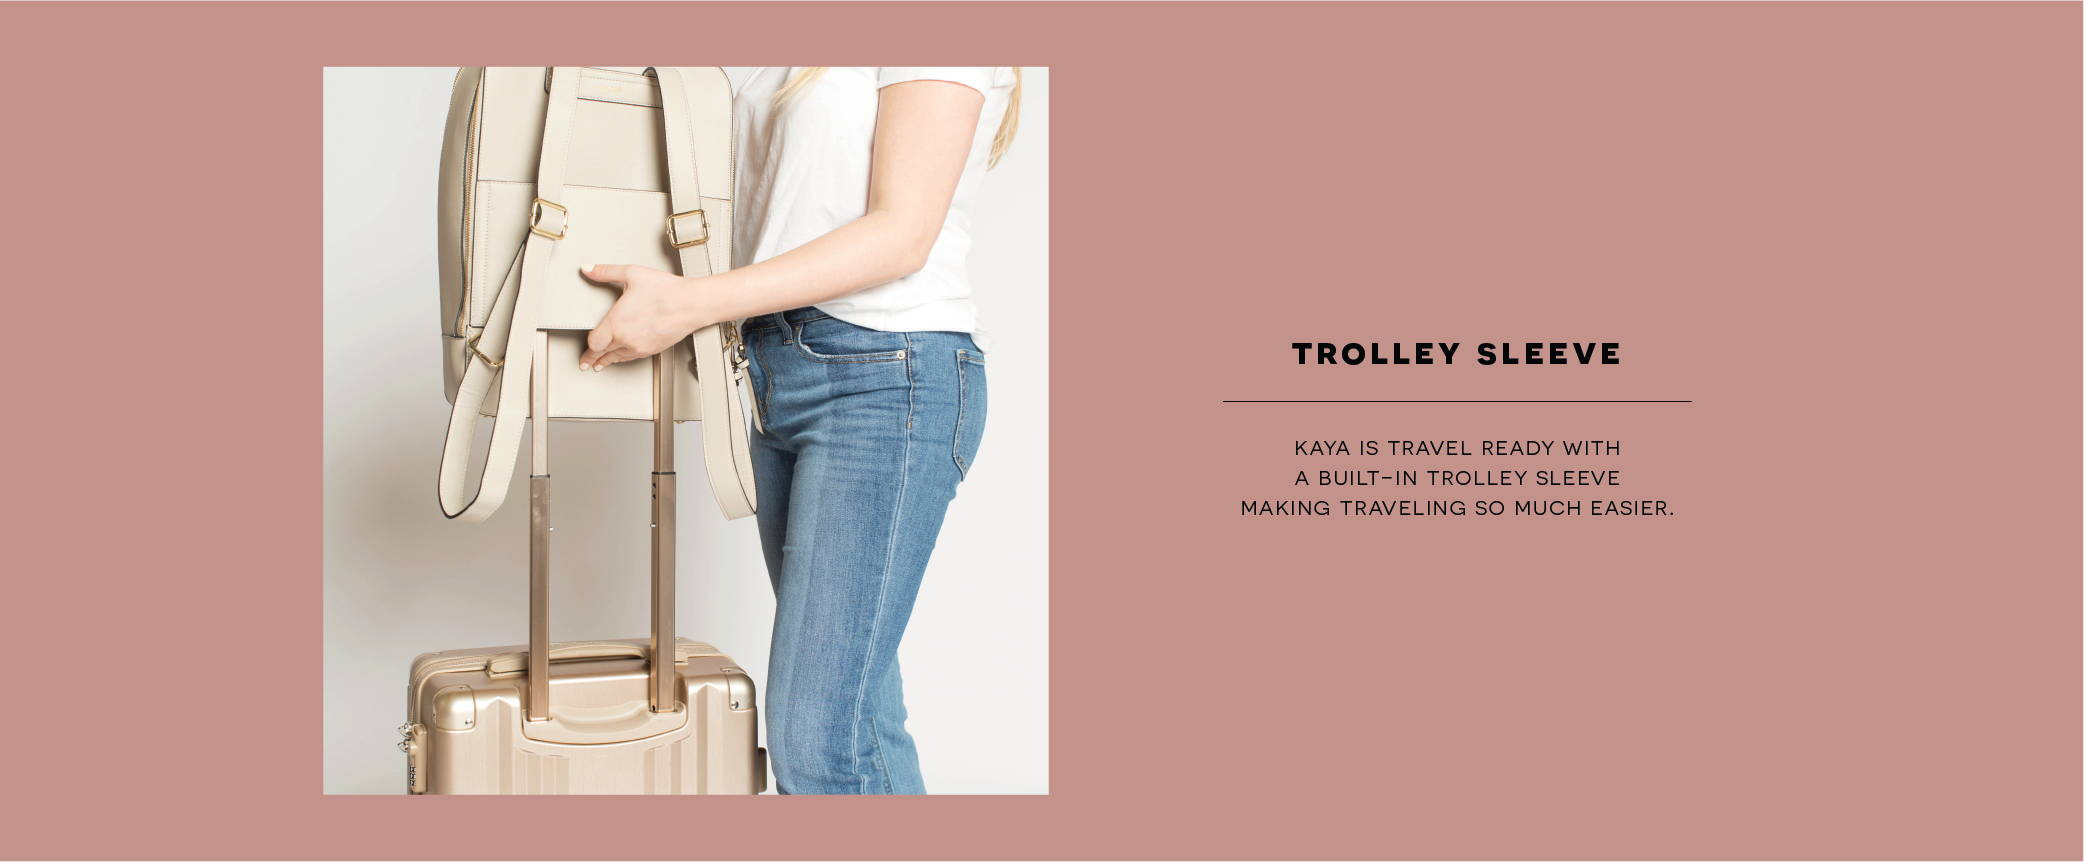 TROLLEY SLEEVE: Kaya is travel ready with a built-in trolley sleeve making traveling so much easier.